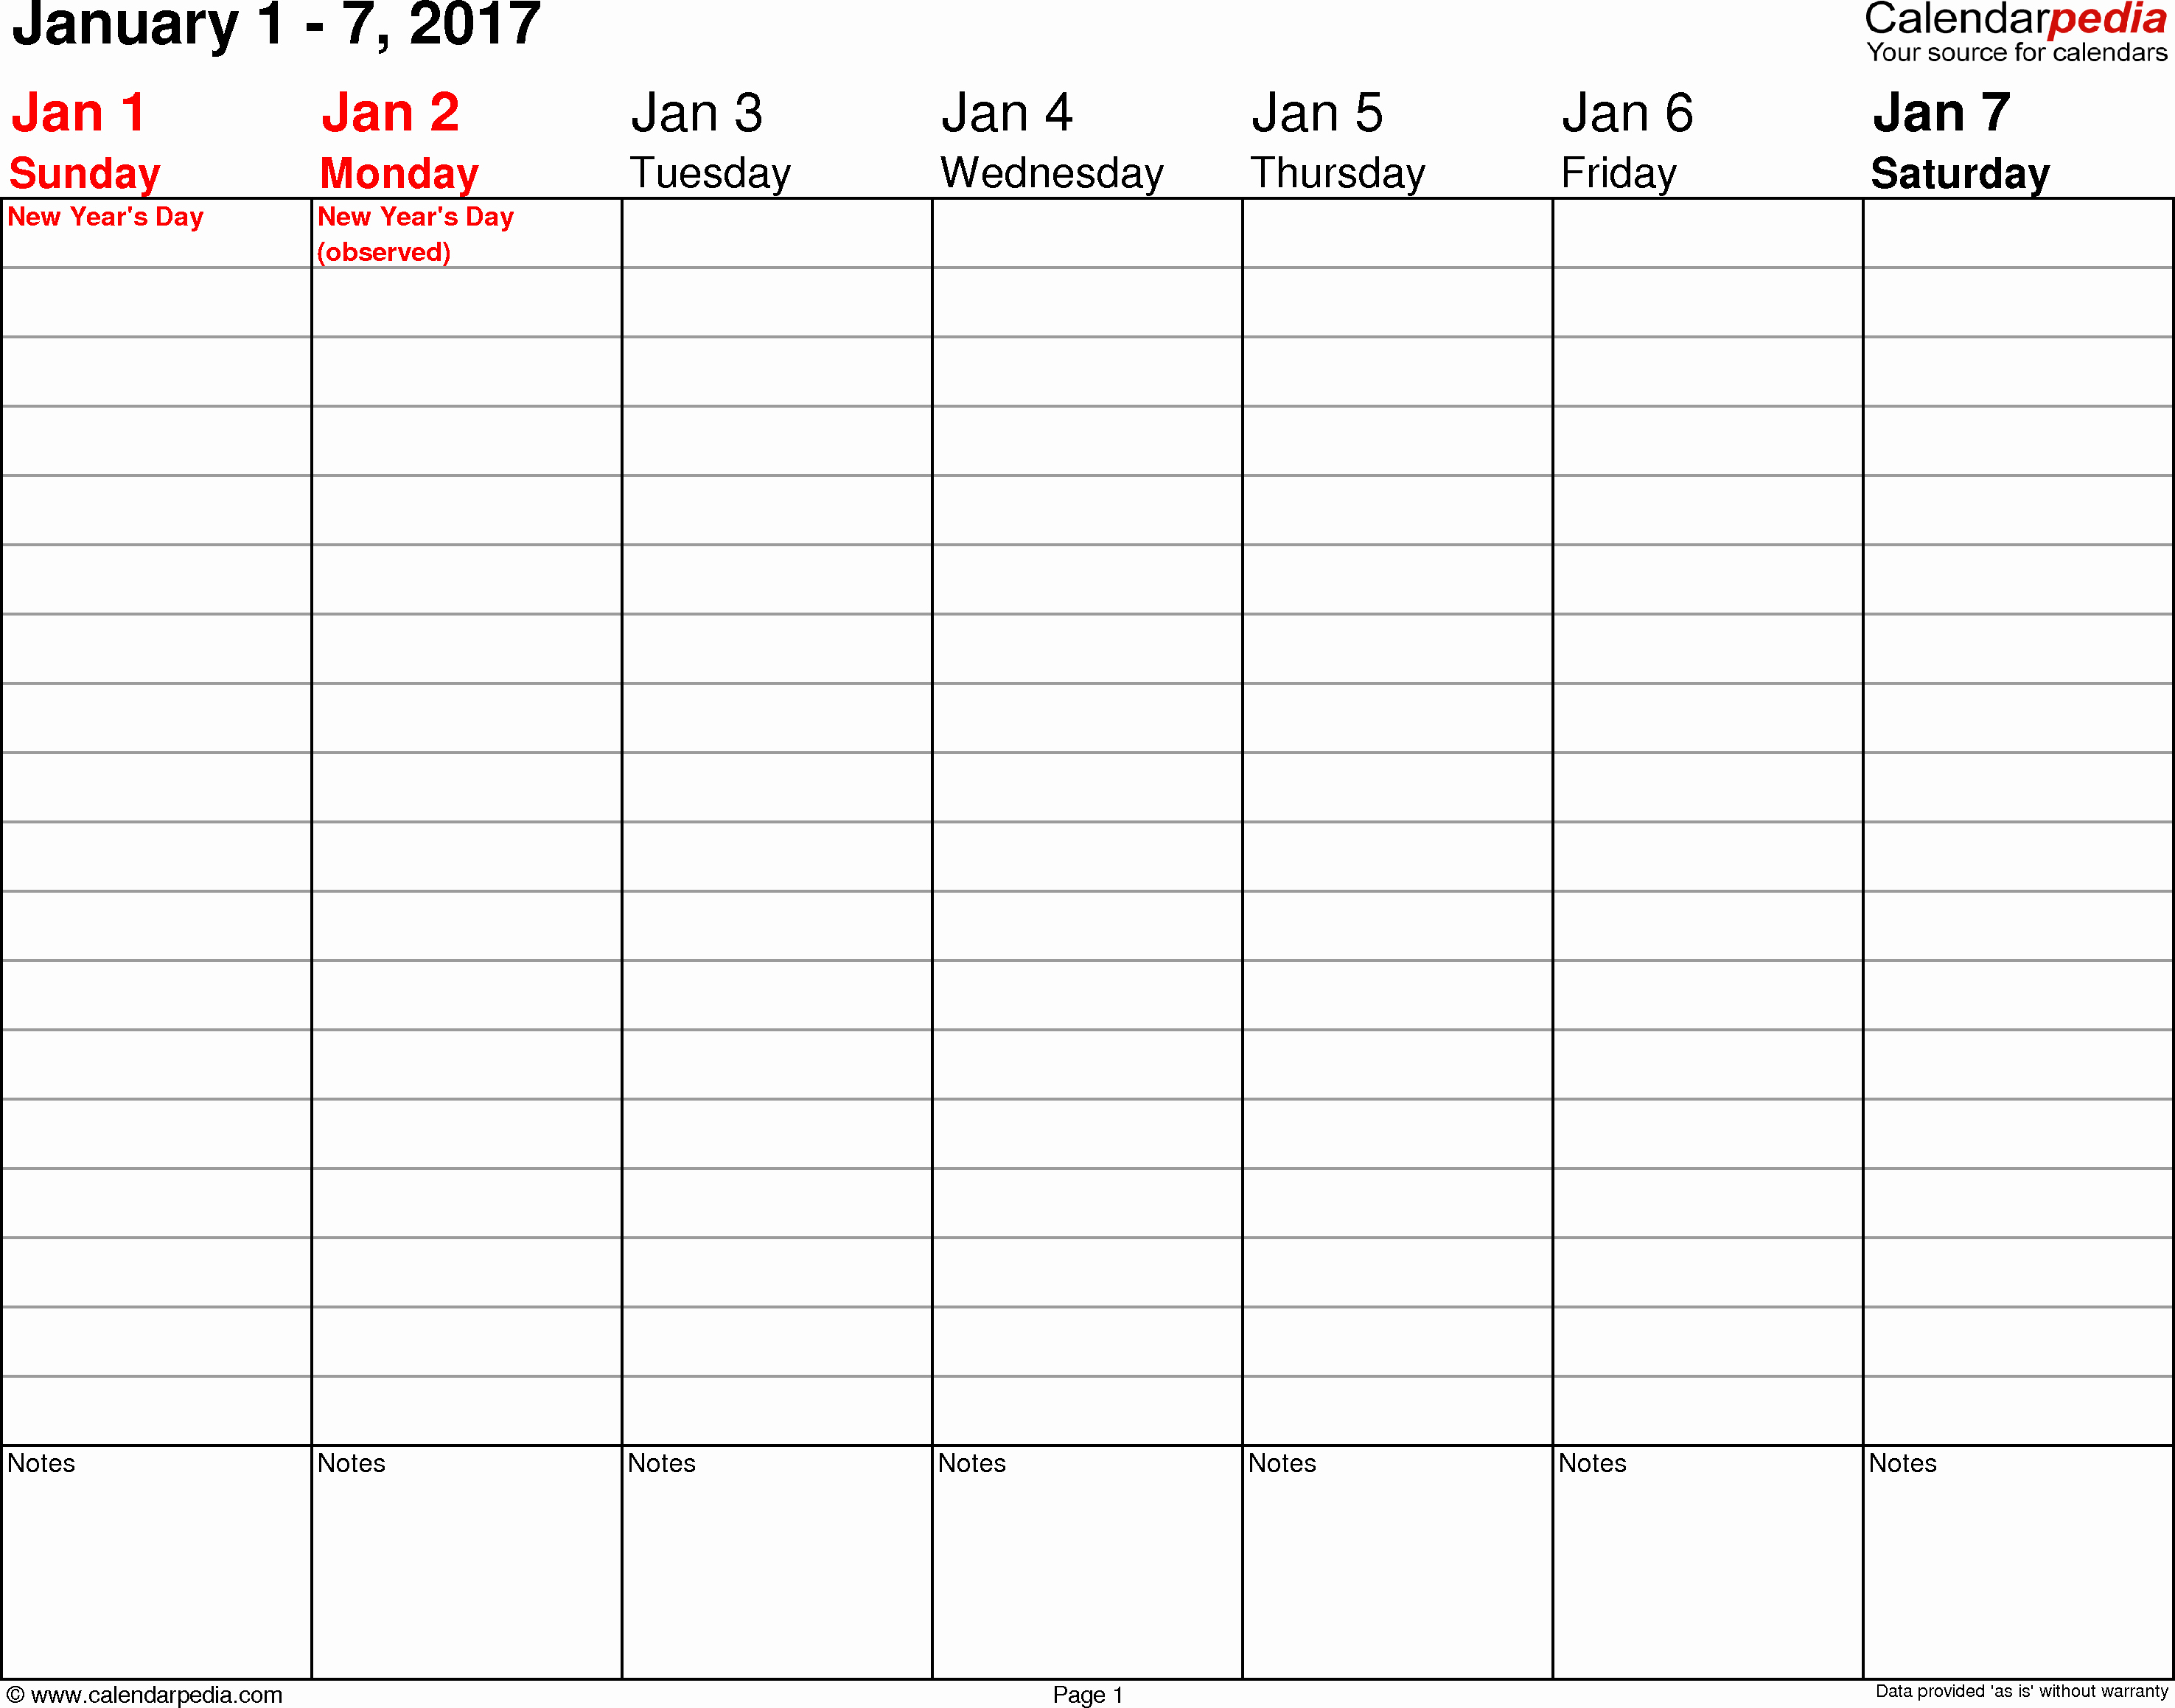 Weekly Calendar Template 2017 Inspirational Weekly Calendar 2017 for Pdf 12 Free Printable Templates